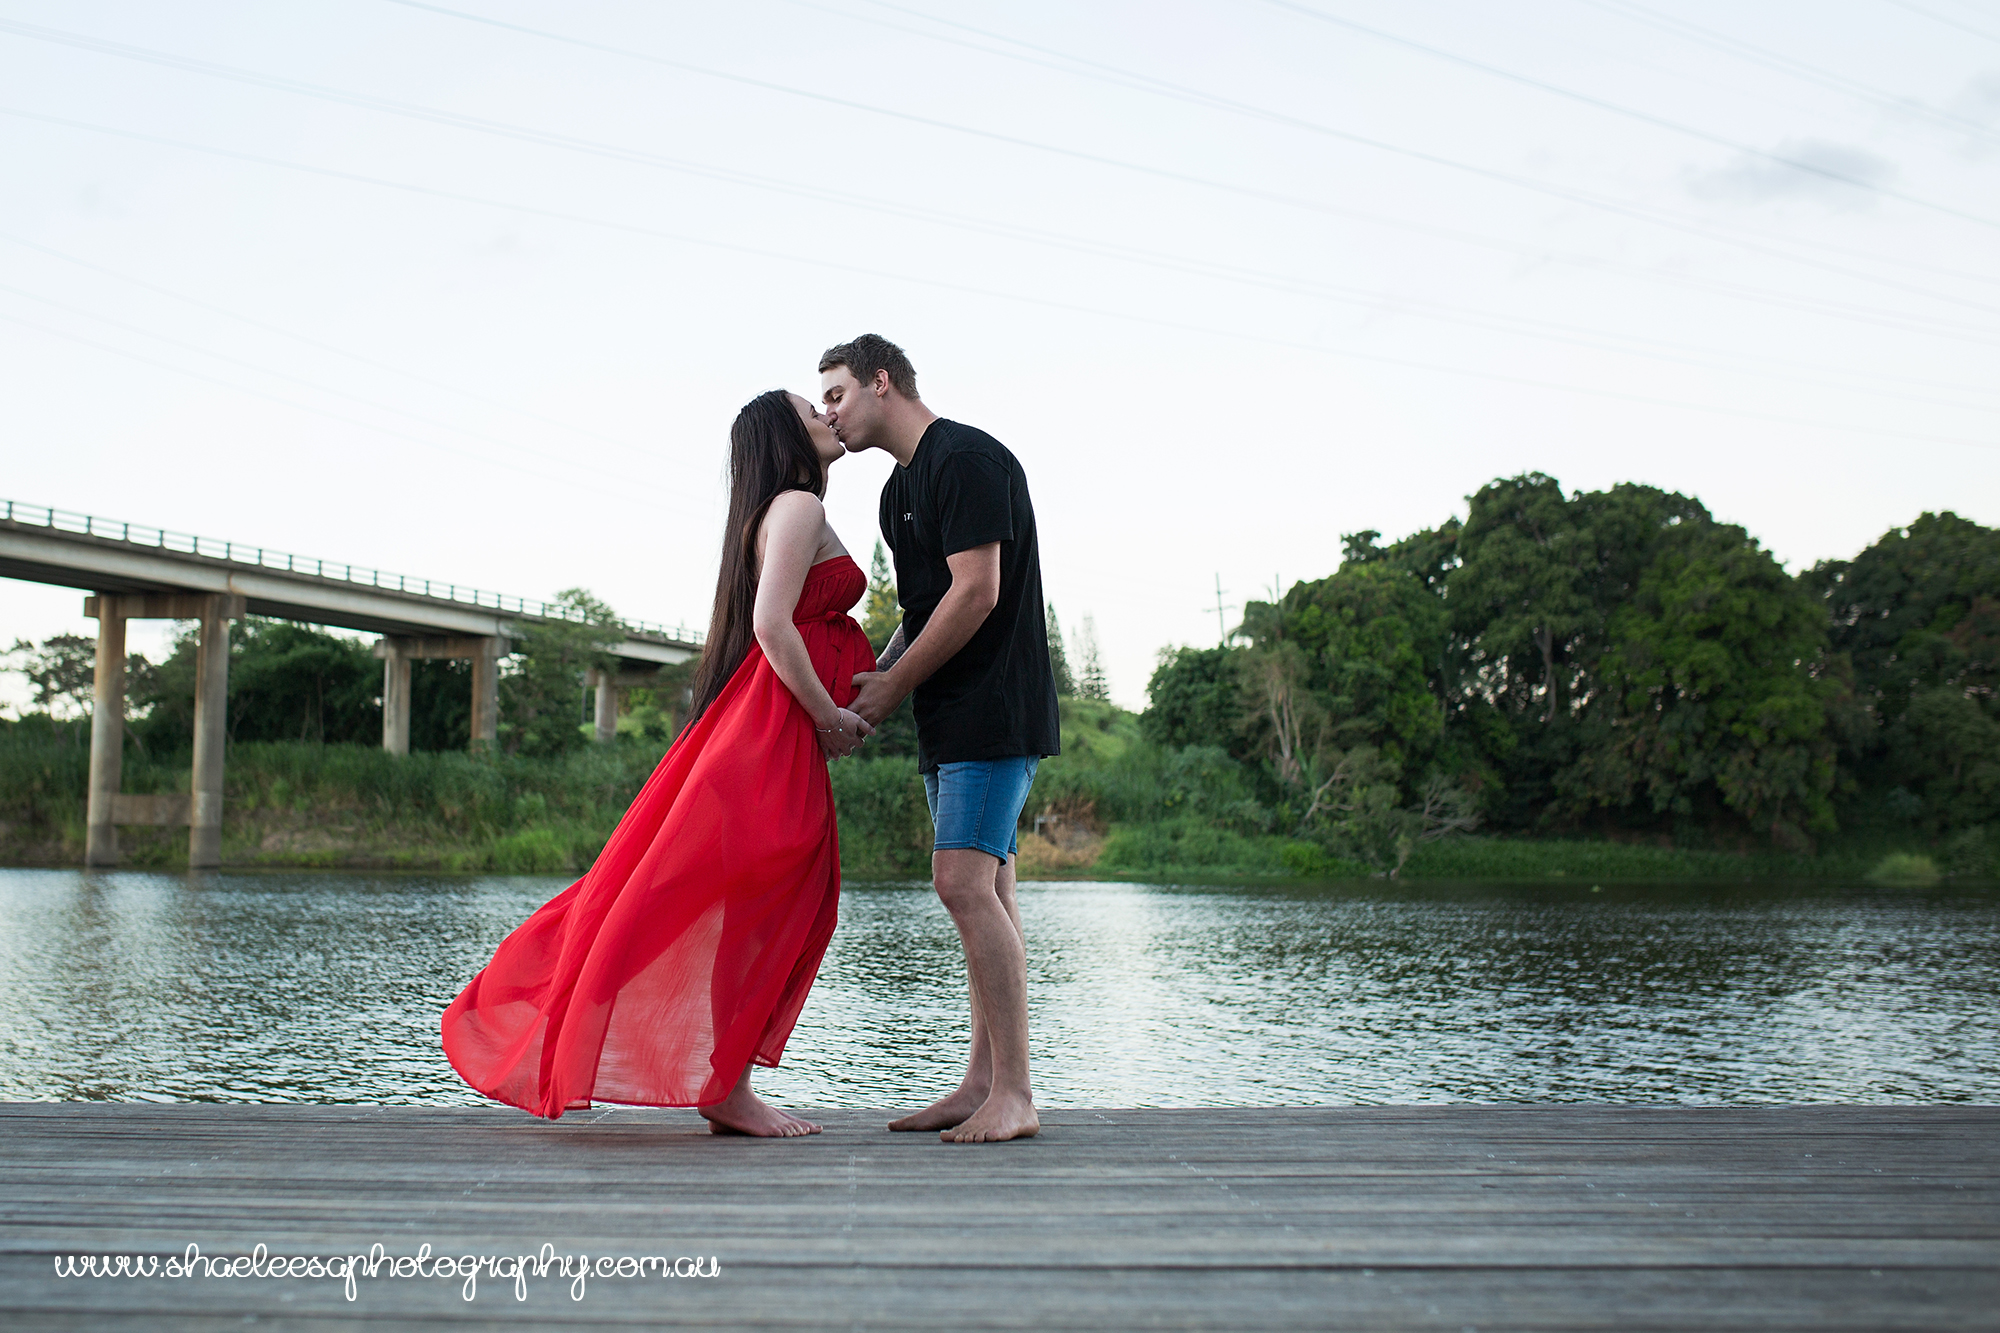 ShaeLeesaPhotography_017_SEALEY.jpg